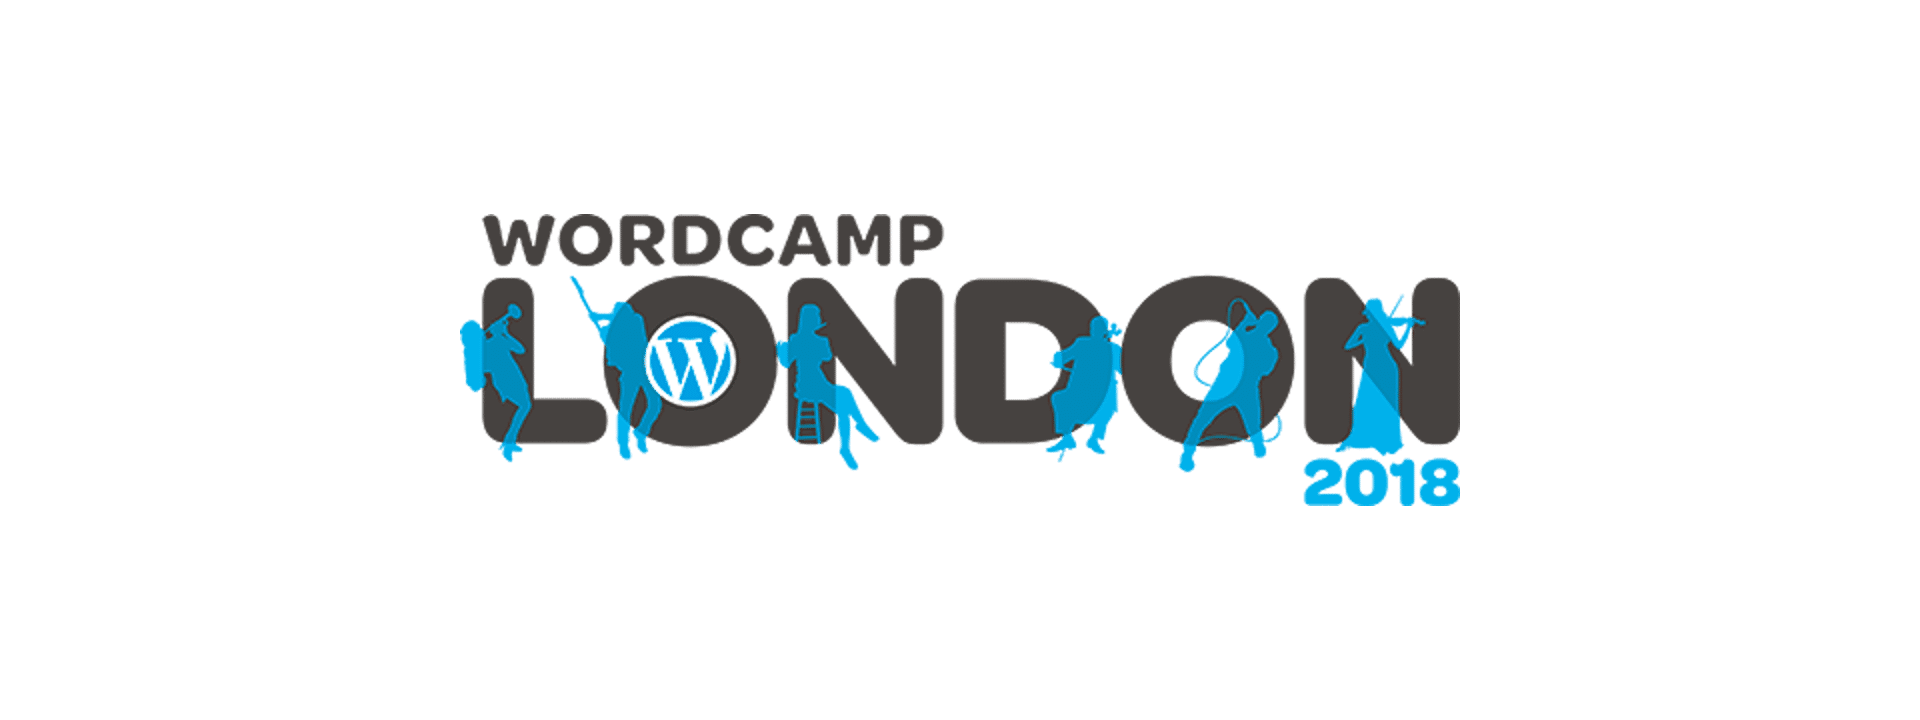 WordCamp London 2018: Recap